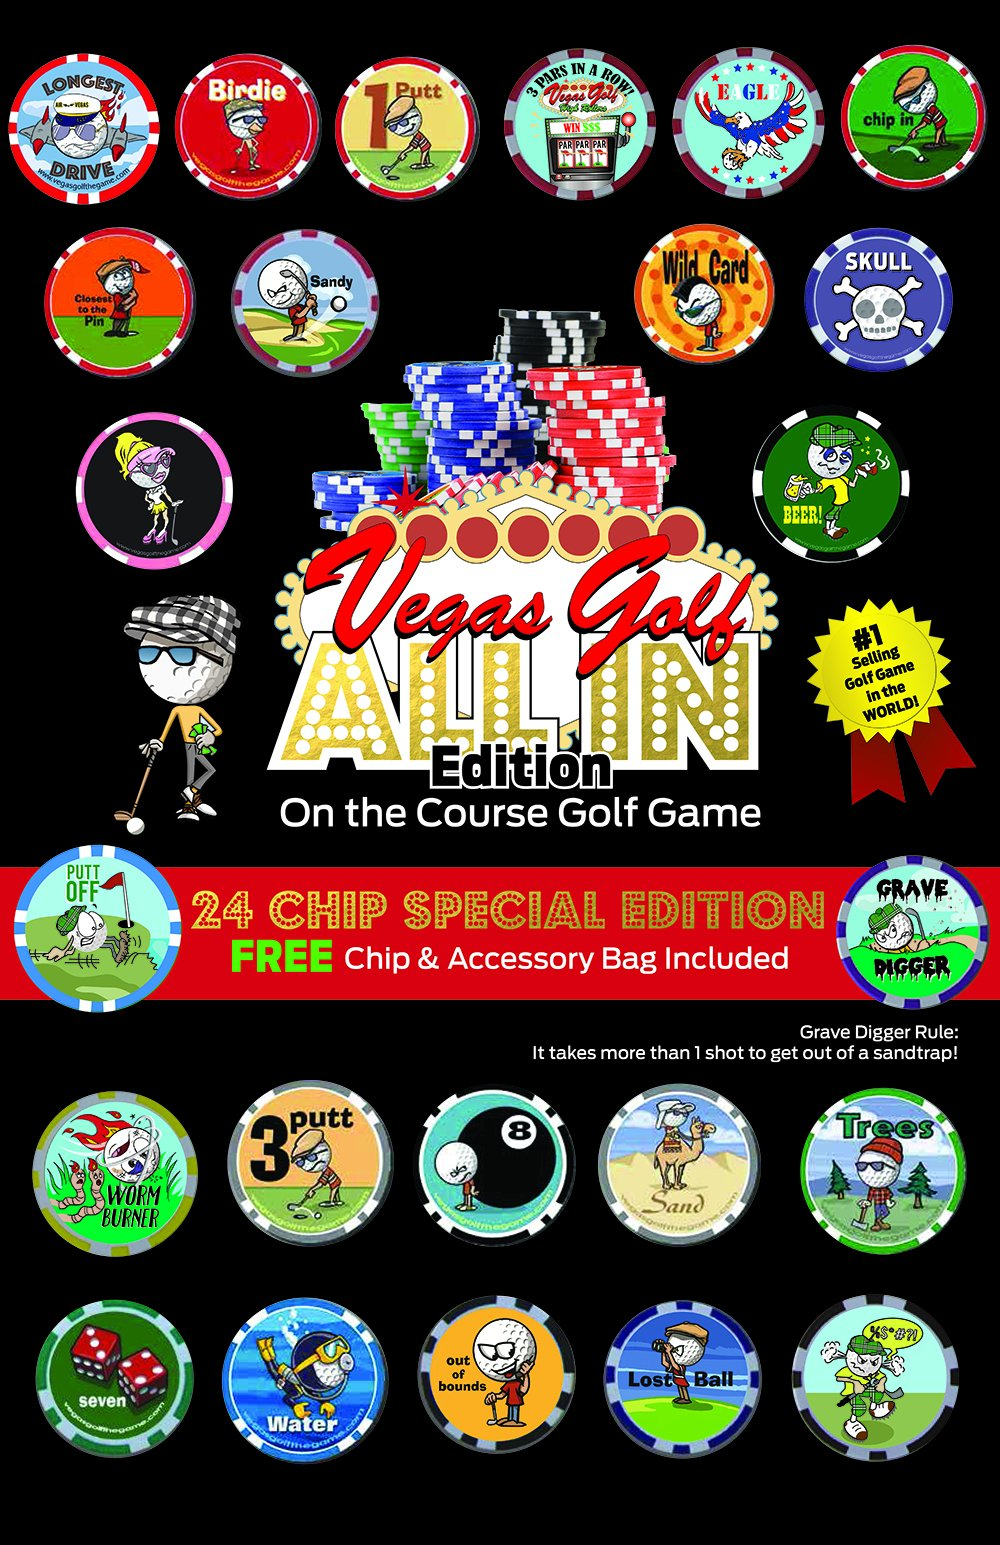 Vegas Golf ALL-IN Edition-FREE DELUXE TEE BAG Included